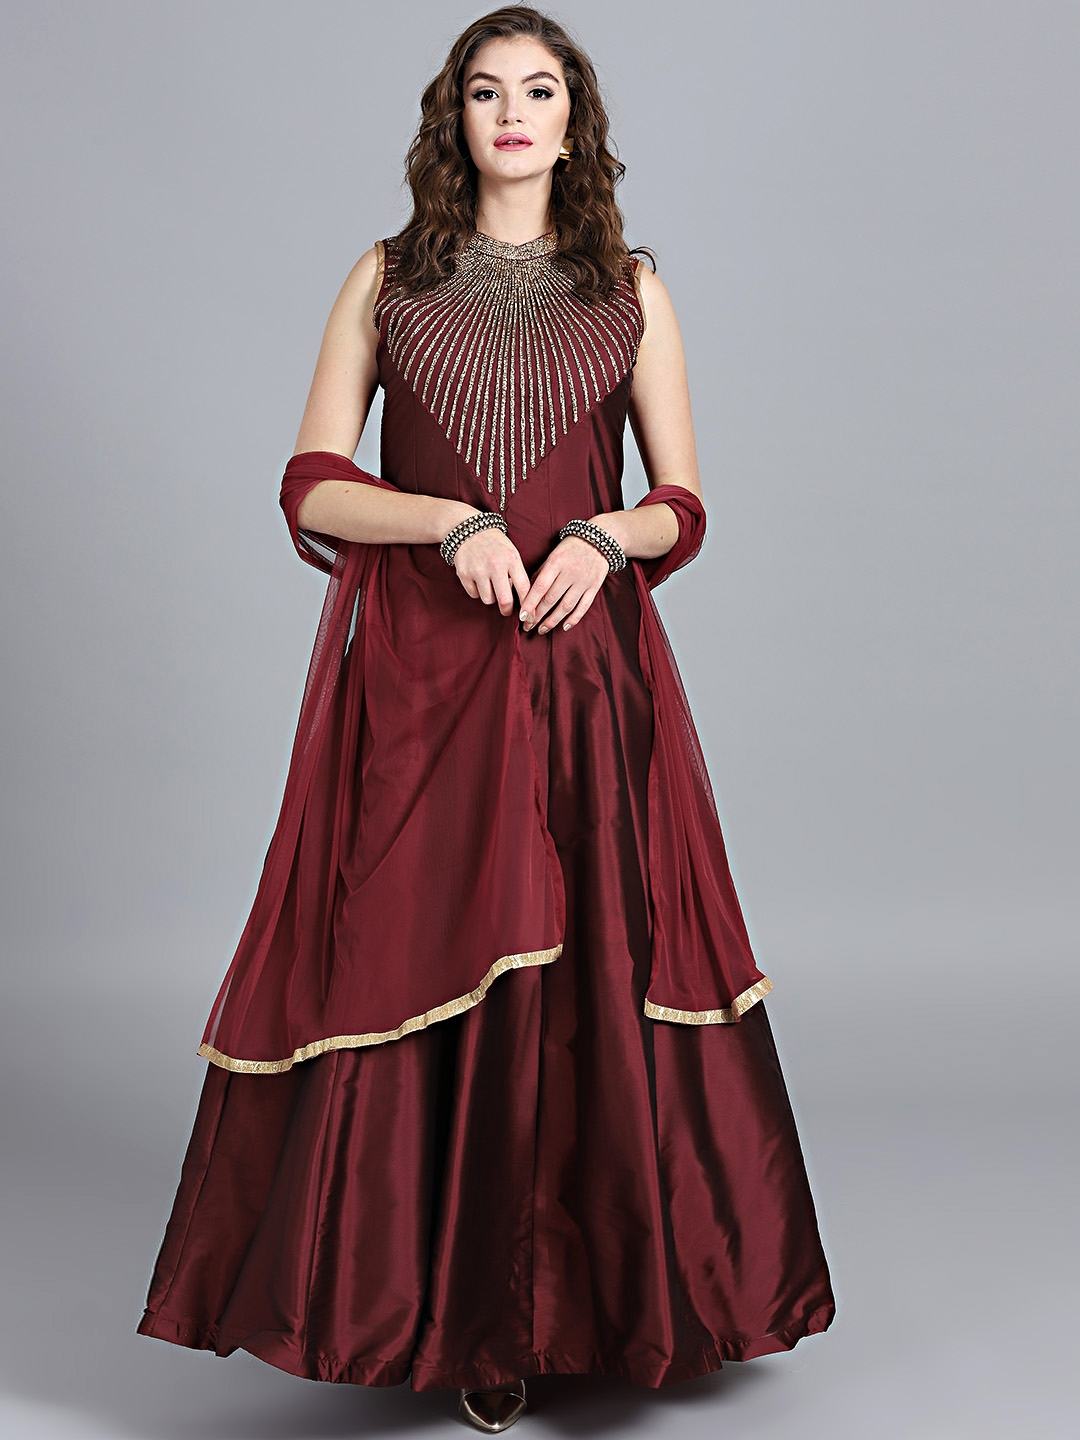 special discount of exquisite craftsmanship well known Chhabra 555 Maroon Embellished Stitched Made to Measure Cocktail Gown with  Dupatta